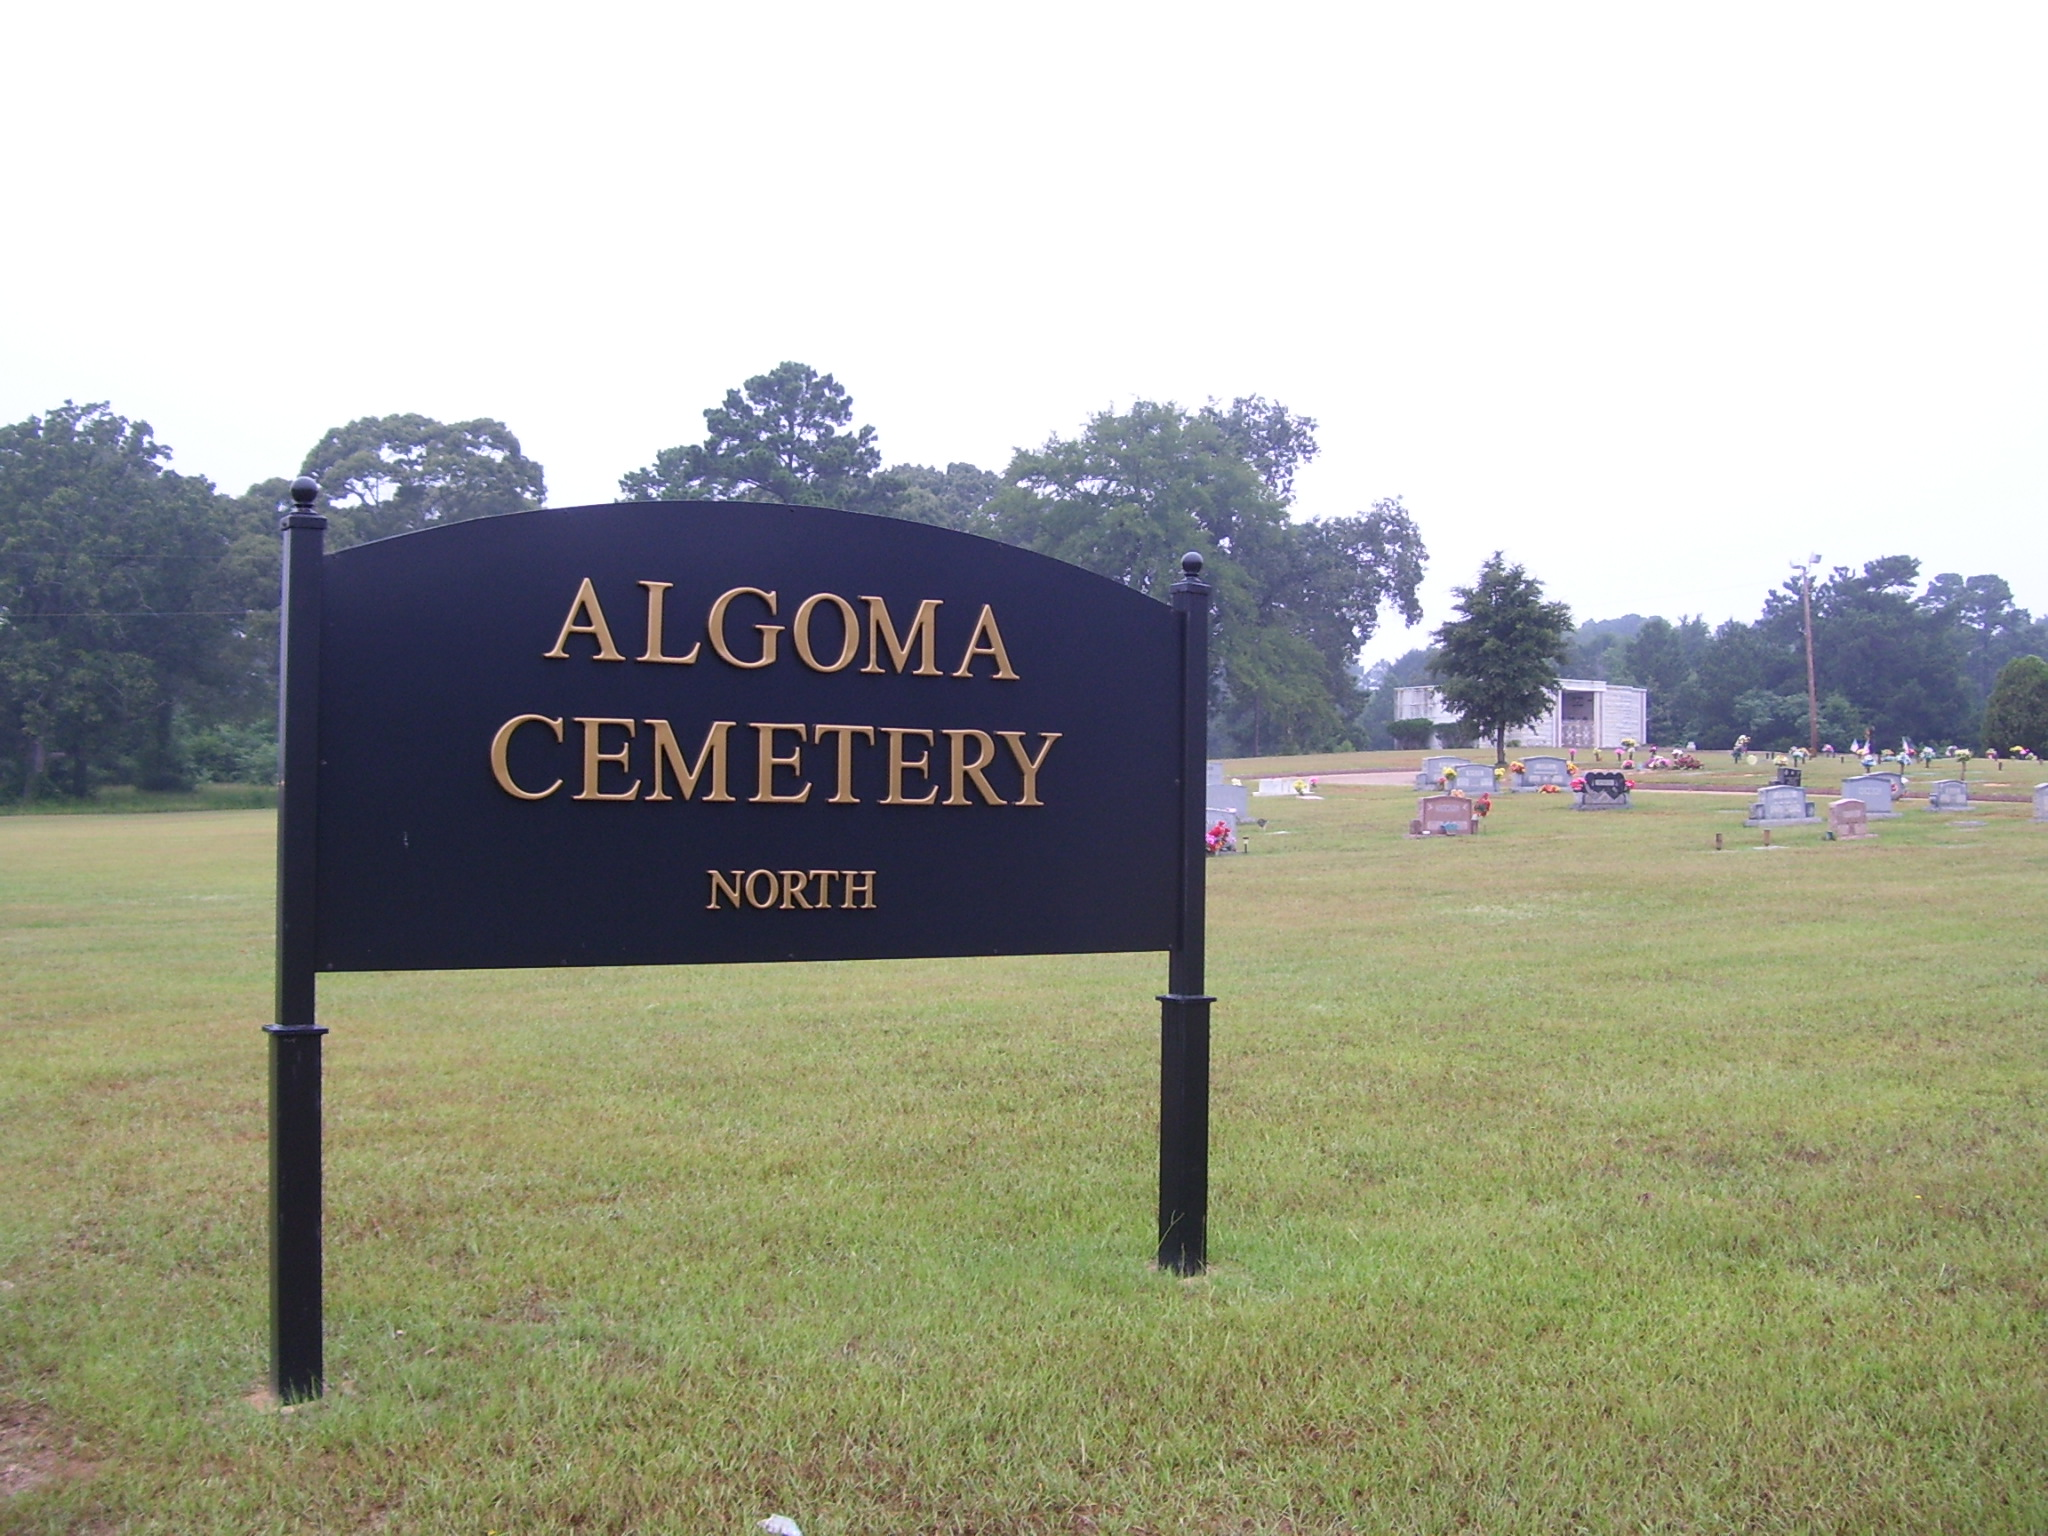 Algoma Cemetery South and North